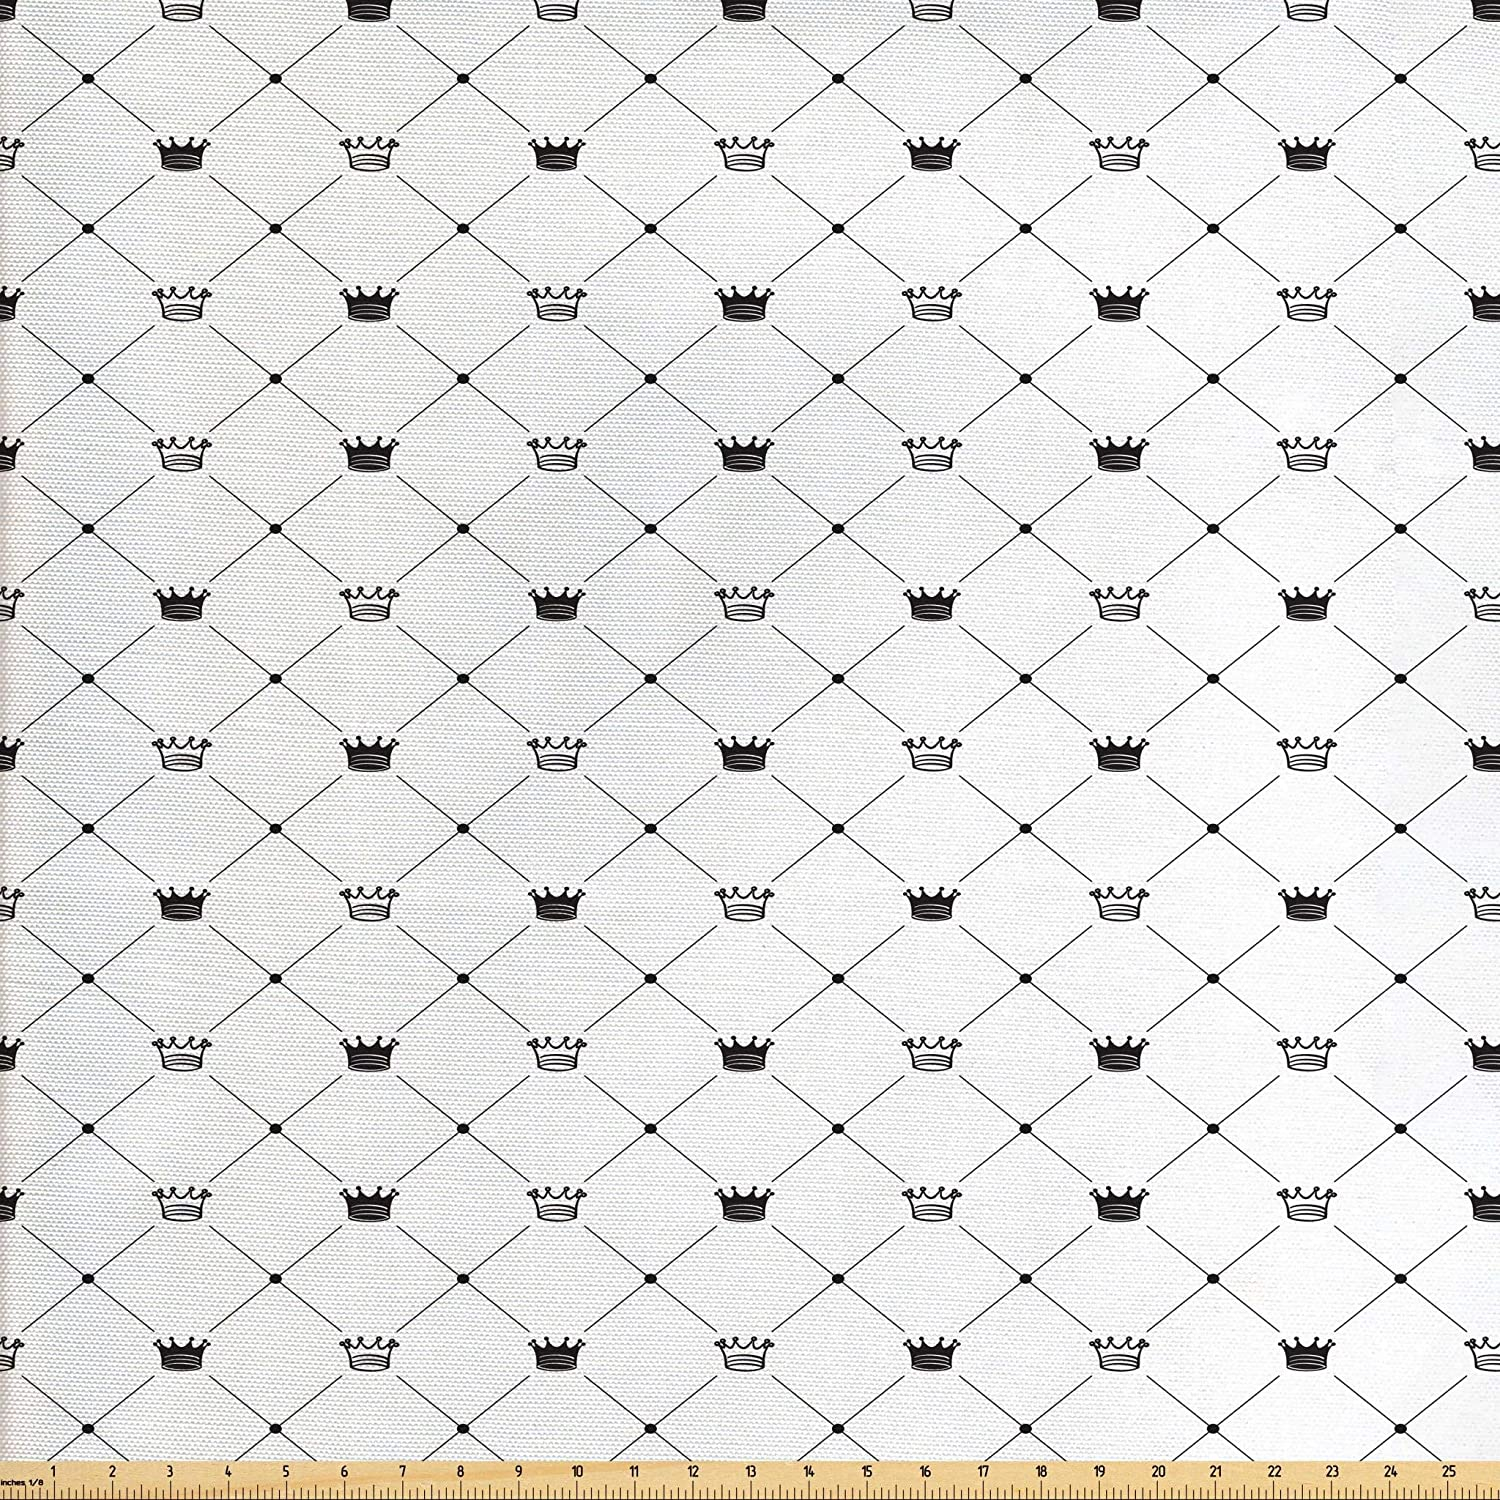 Ambesonne Abstract Fabric by The Yard, Kings Crown Classic Empire Royal on Contemporary Simplistic Display, Decorative Fabric for Upholstery and Home Accents, 1 Yard, Black White